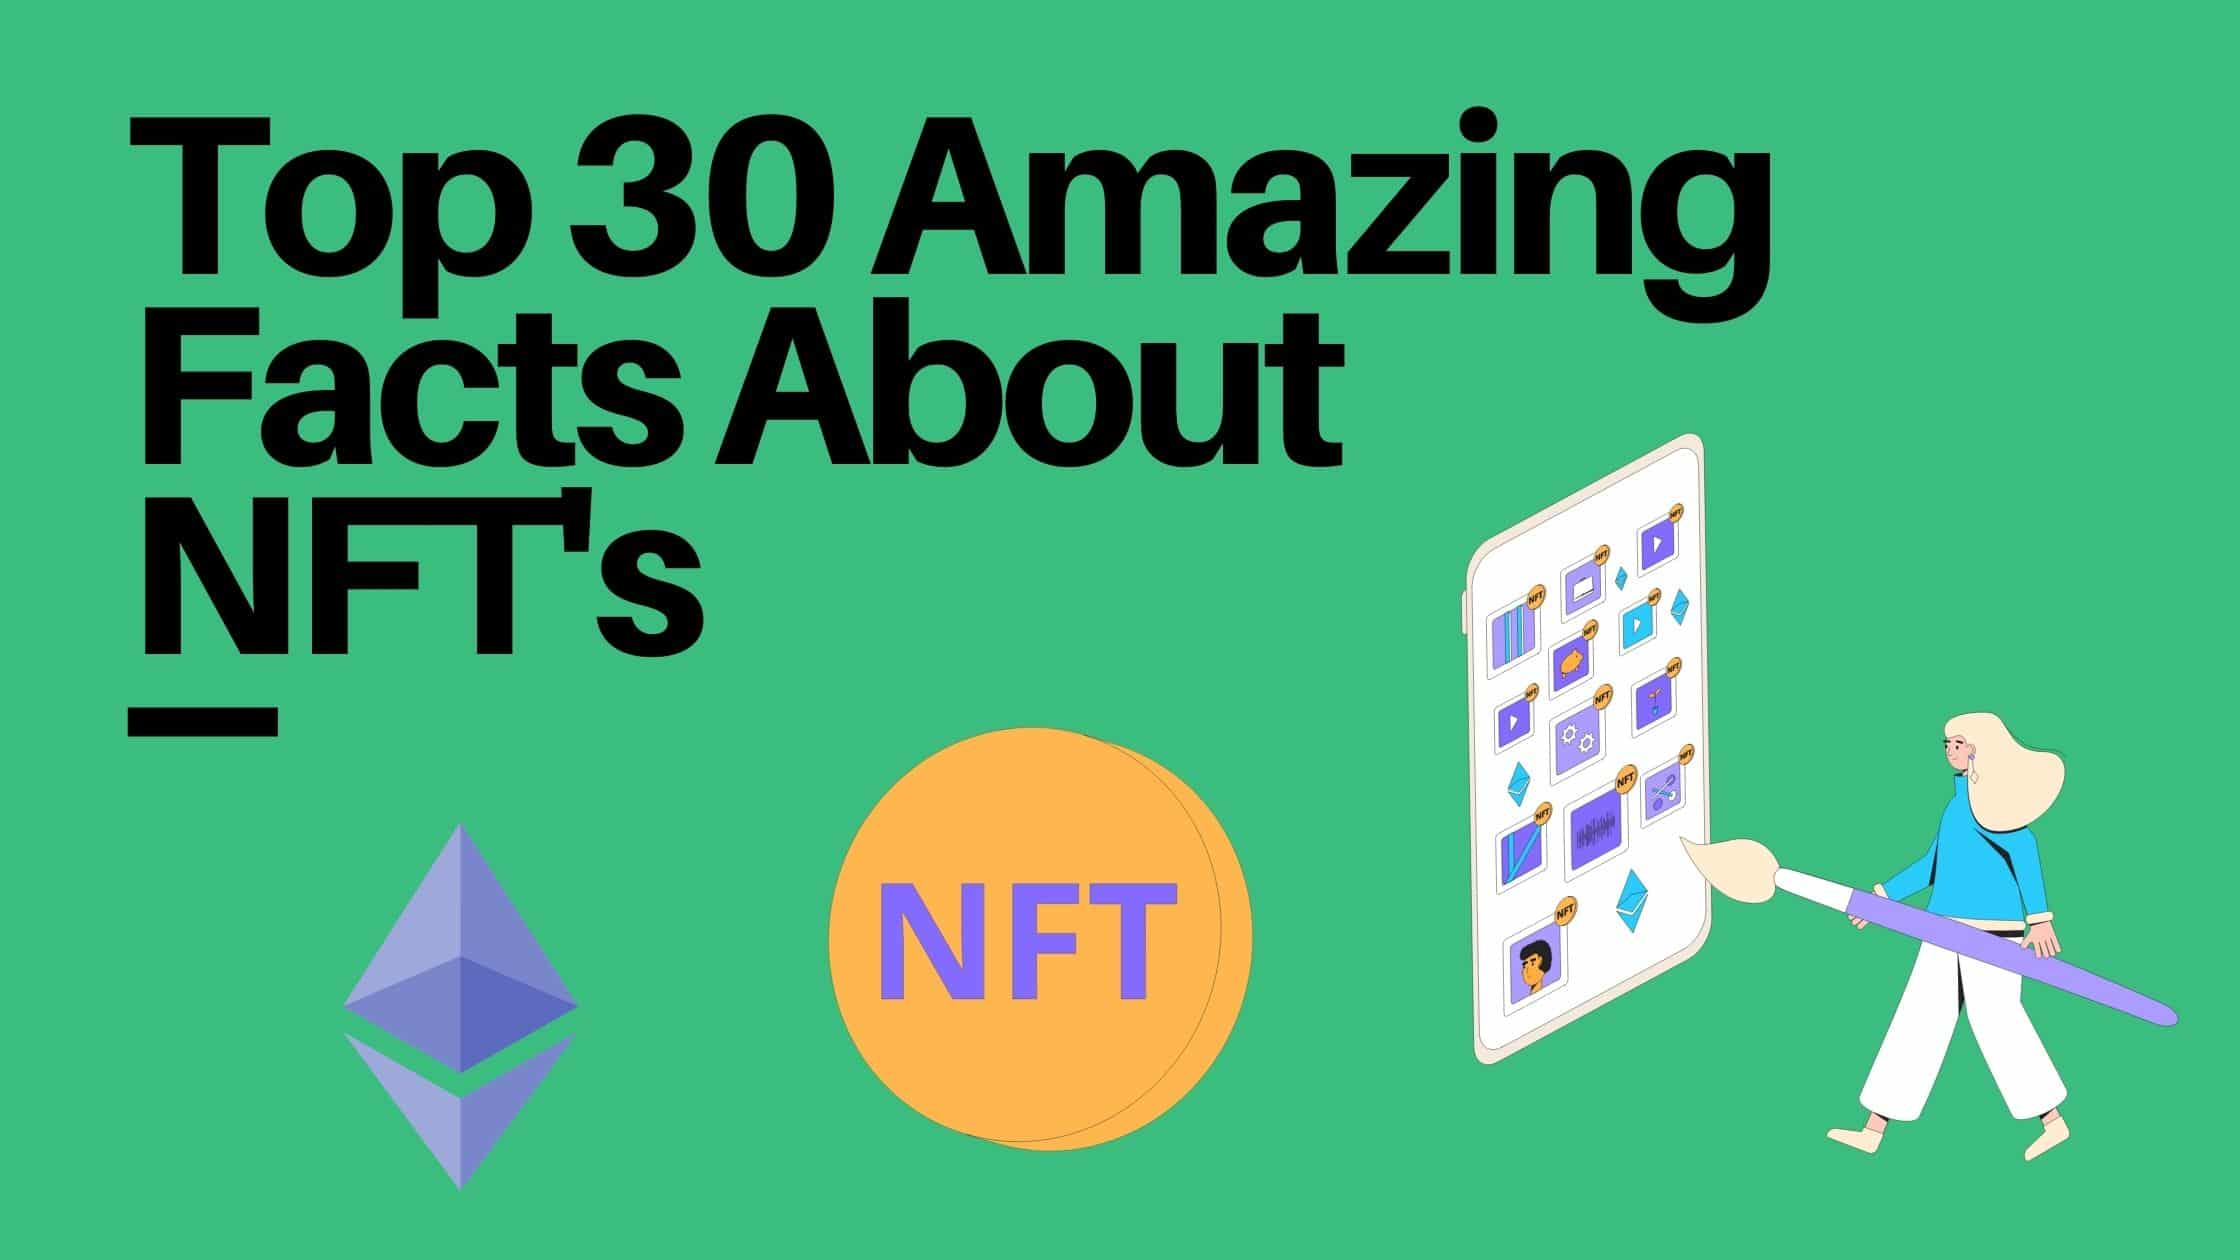 facts about NFT